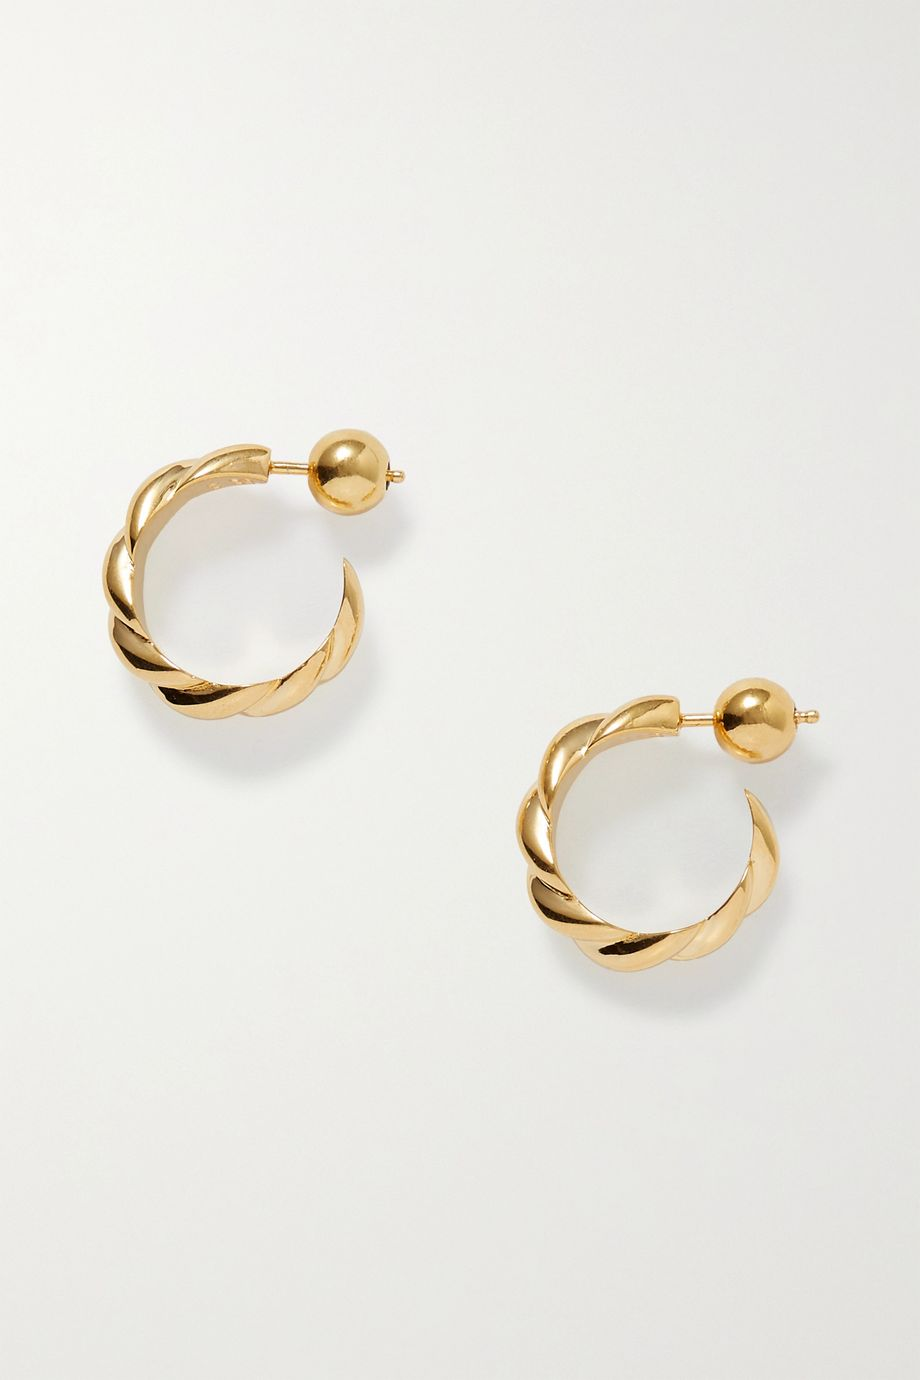 Sophie Buhai + NET SUSTAIN gold vermeil hoop earrings